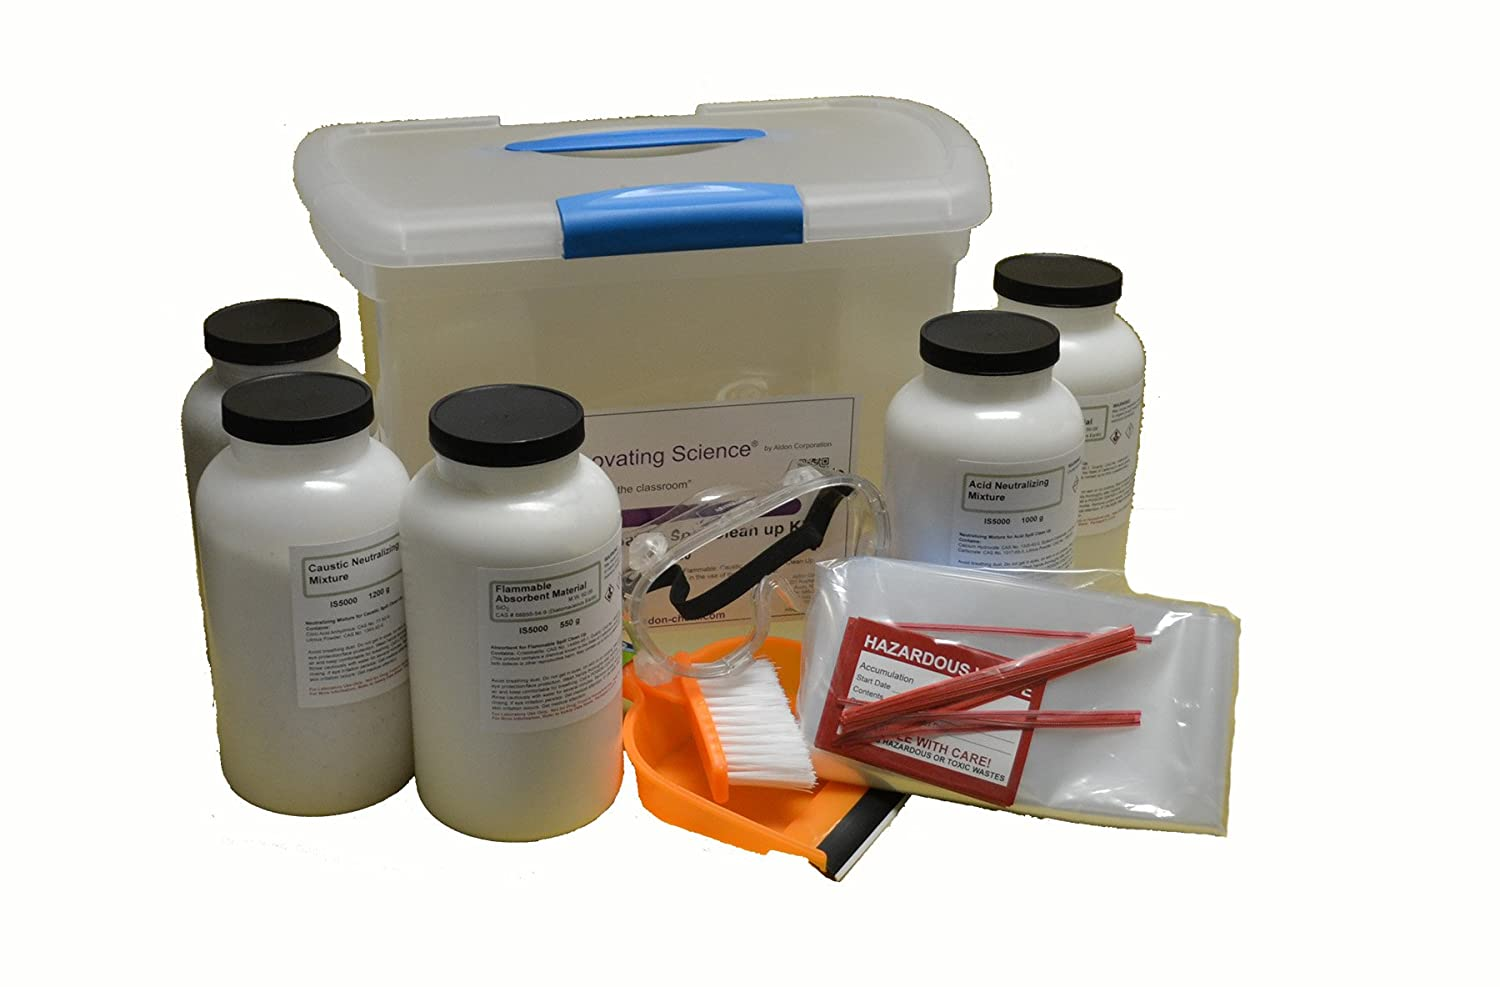 Time sale Solvent Caustic Acid Award-winning store Neutralization - Up K Spill Master Clean